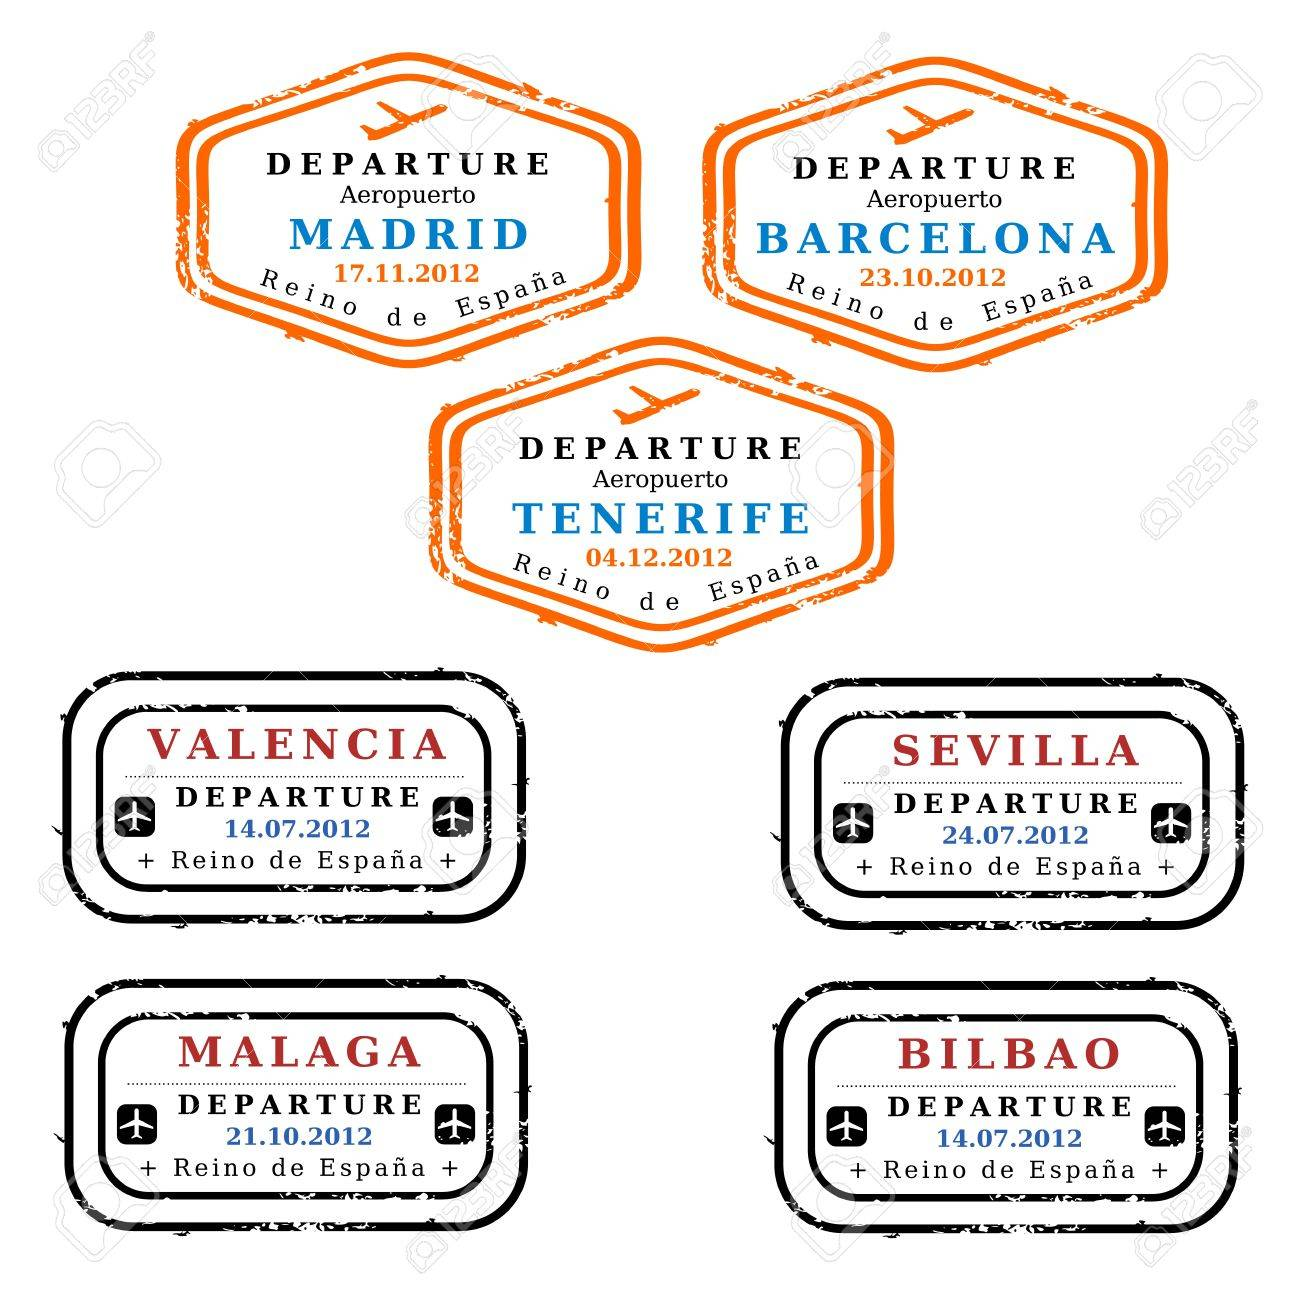 Travel stamps from Spain. Grungy stamps (not real). Spanish destinations: Madrid, Barcelona, Tenerife, Valencia, Seville, Malaga and Bilbao. Stock Vector - 16540512